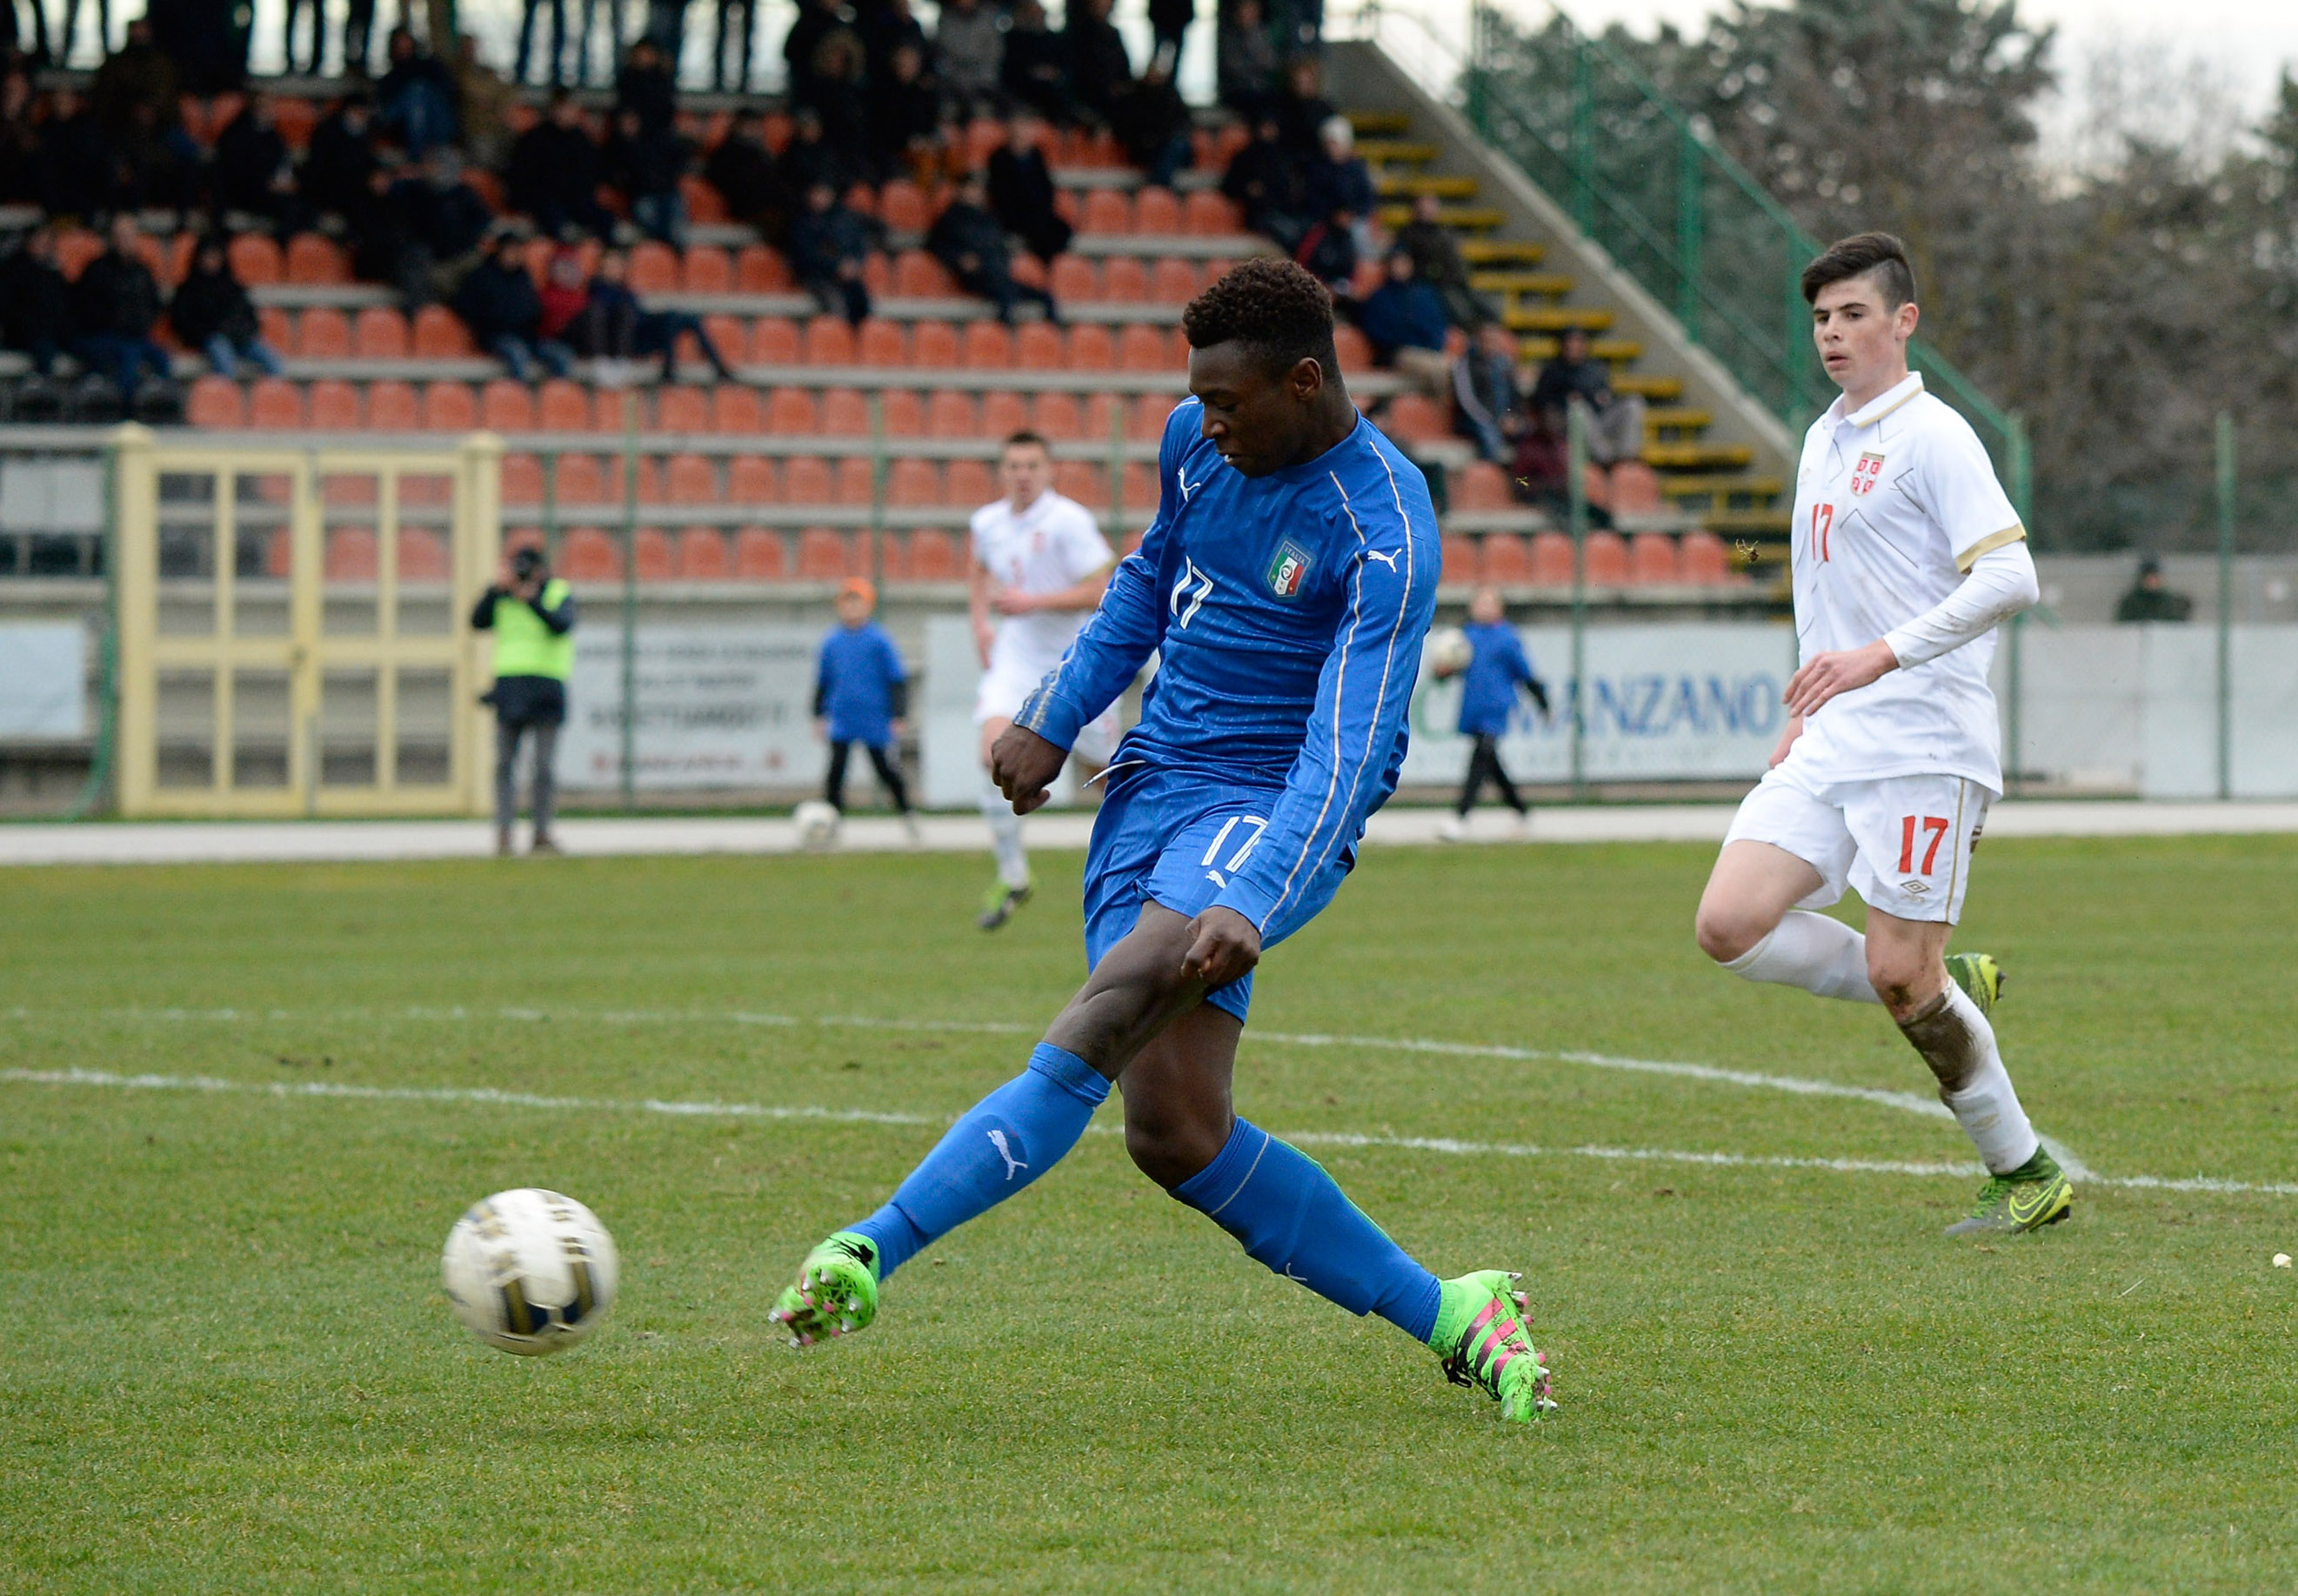 MANZANO, ITALY - FEBRUARY 16:  Bioty Moise Kean of Italy U17 scores his team's seconf goal during the international friendly match between Italy U17 and Serbia U17 at Stadio Comunale  on February 16, 2016 in Manzano, Italy.  (Photo by Dino Panato/Getty Images)